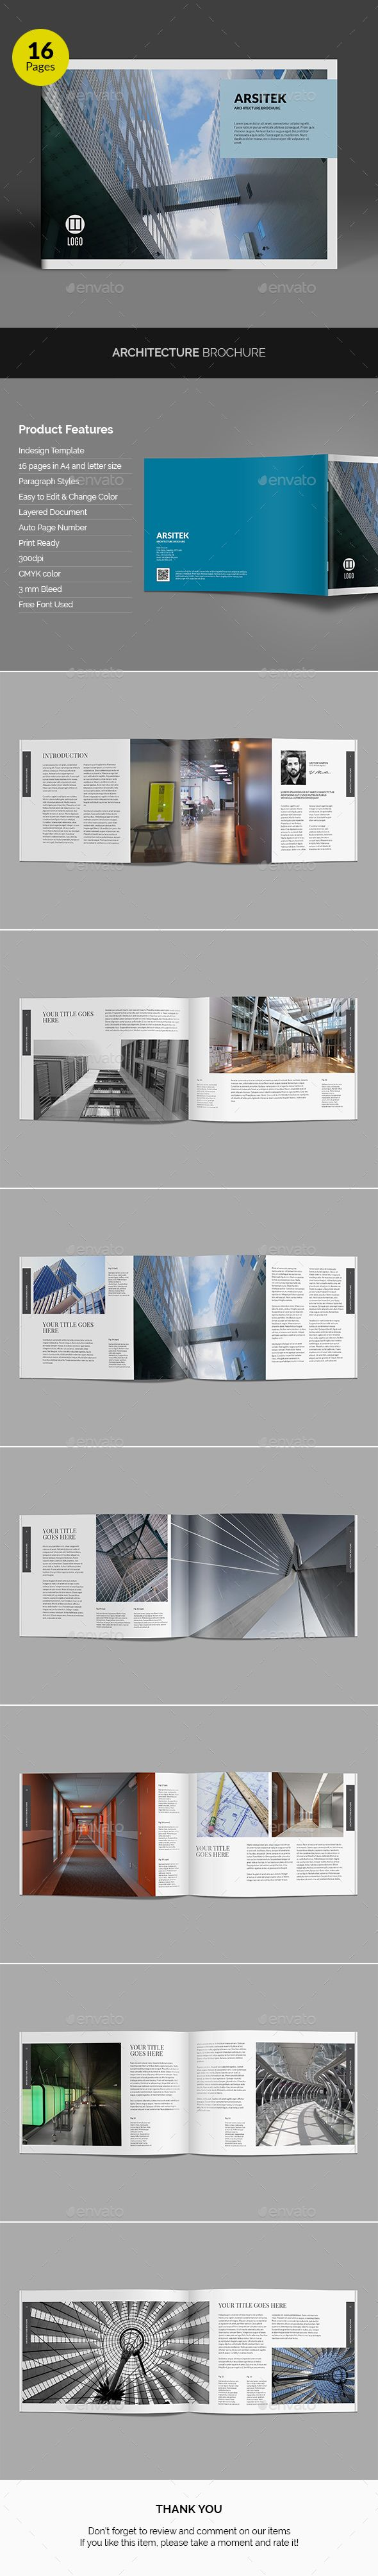 Architecture Brochure  Brochure Template Brochures And Architecture